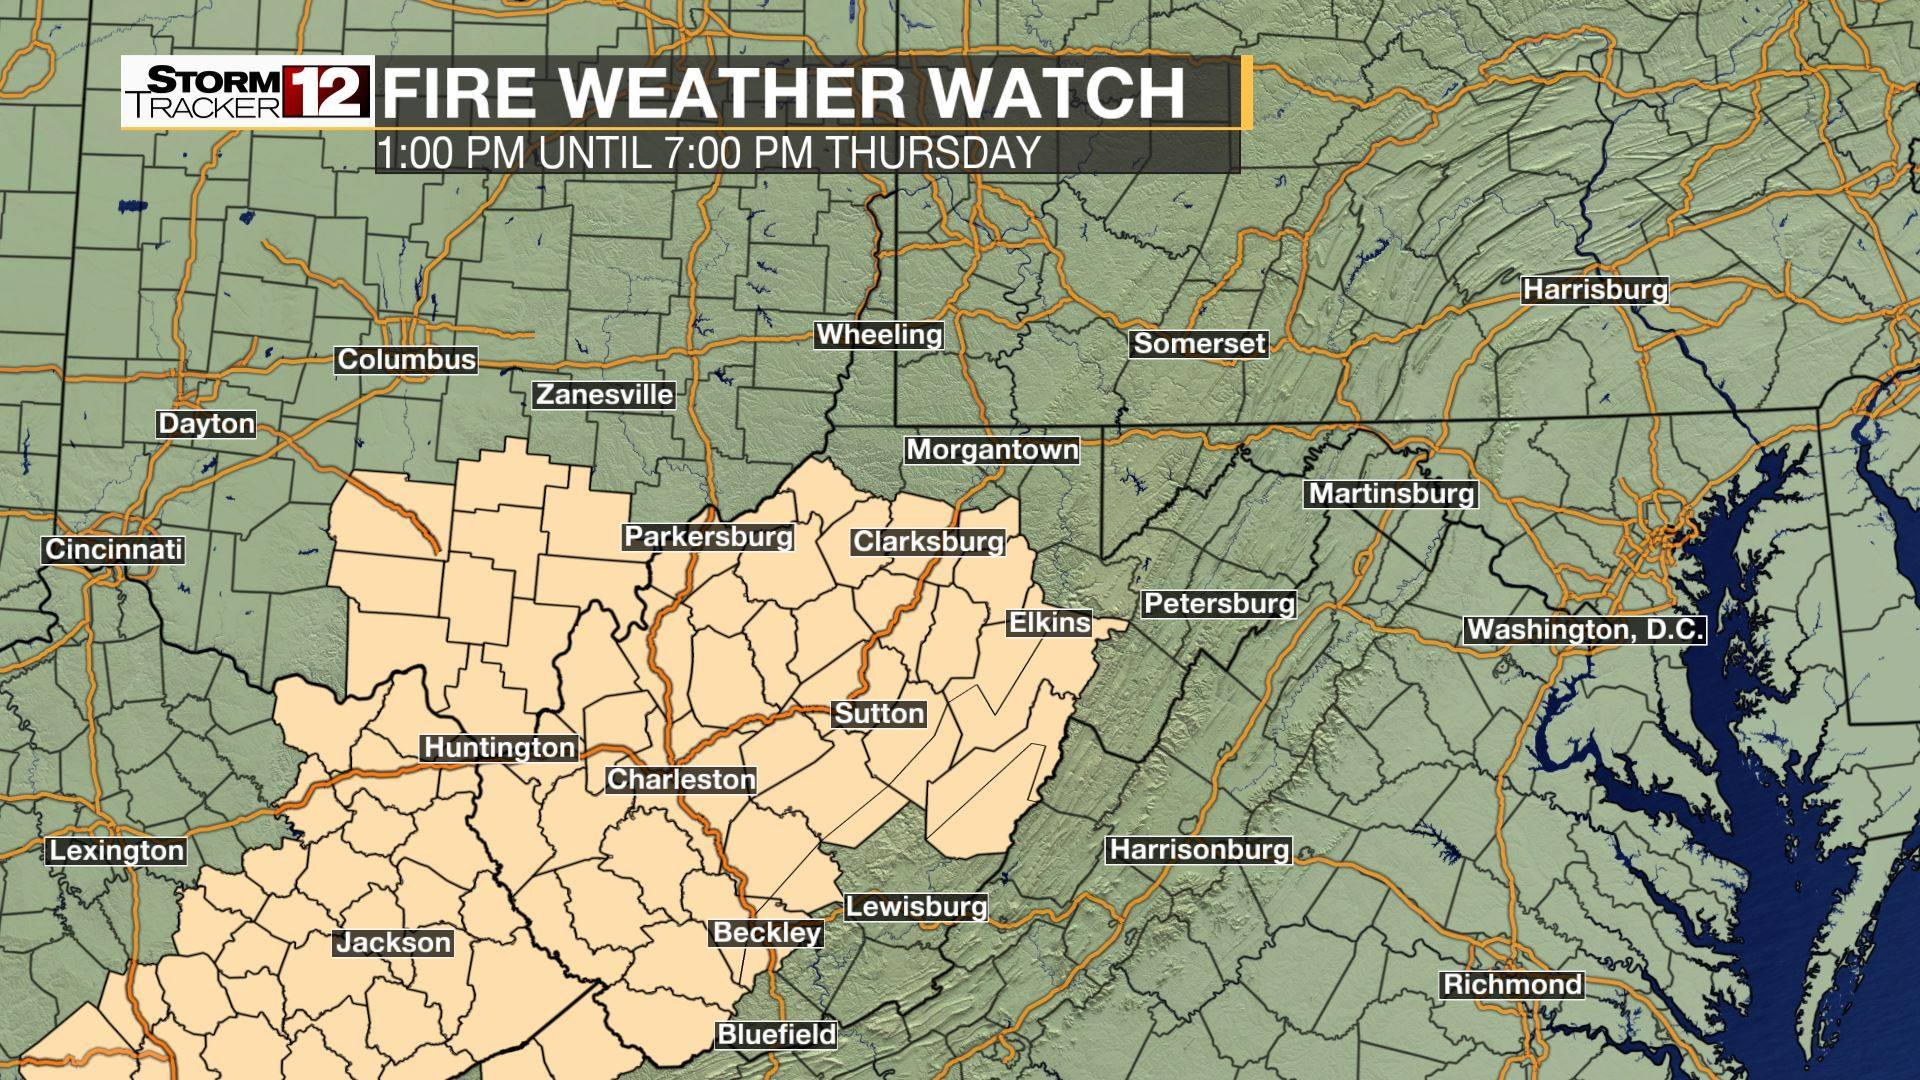 Fire Weather Watch